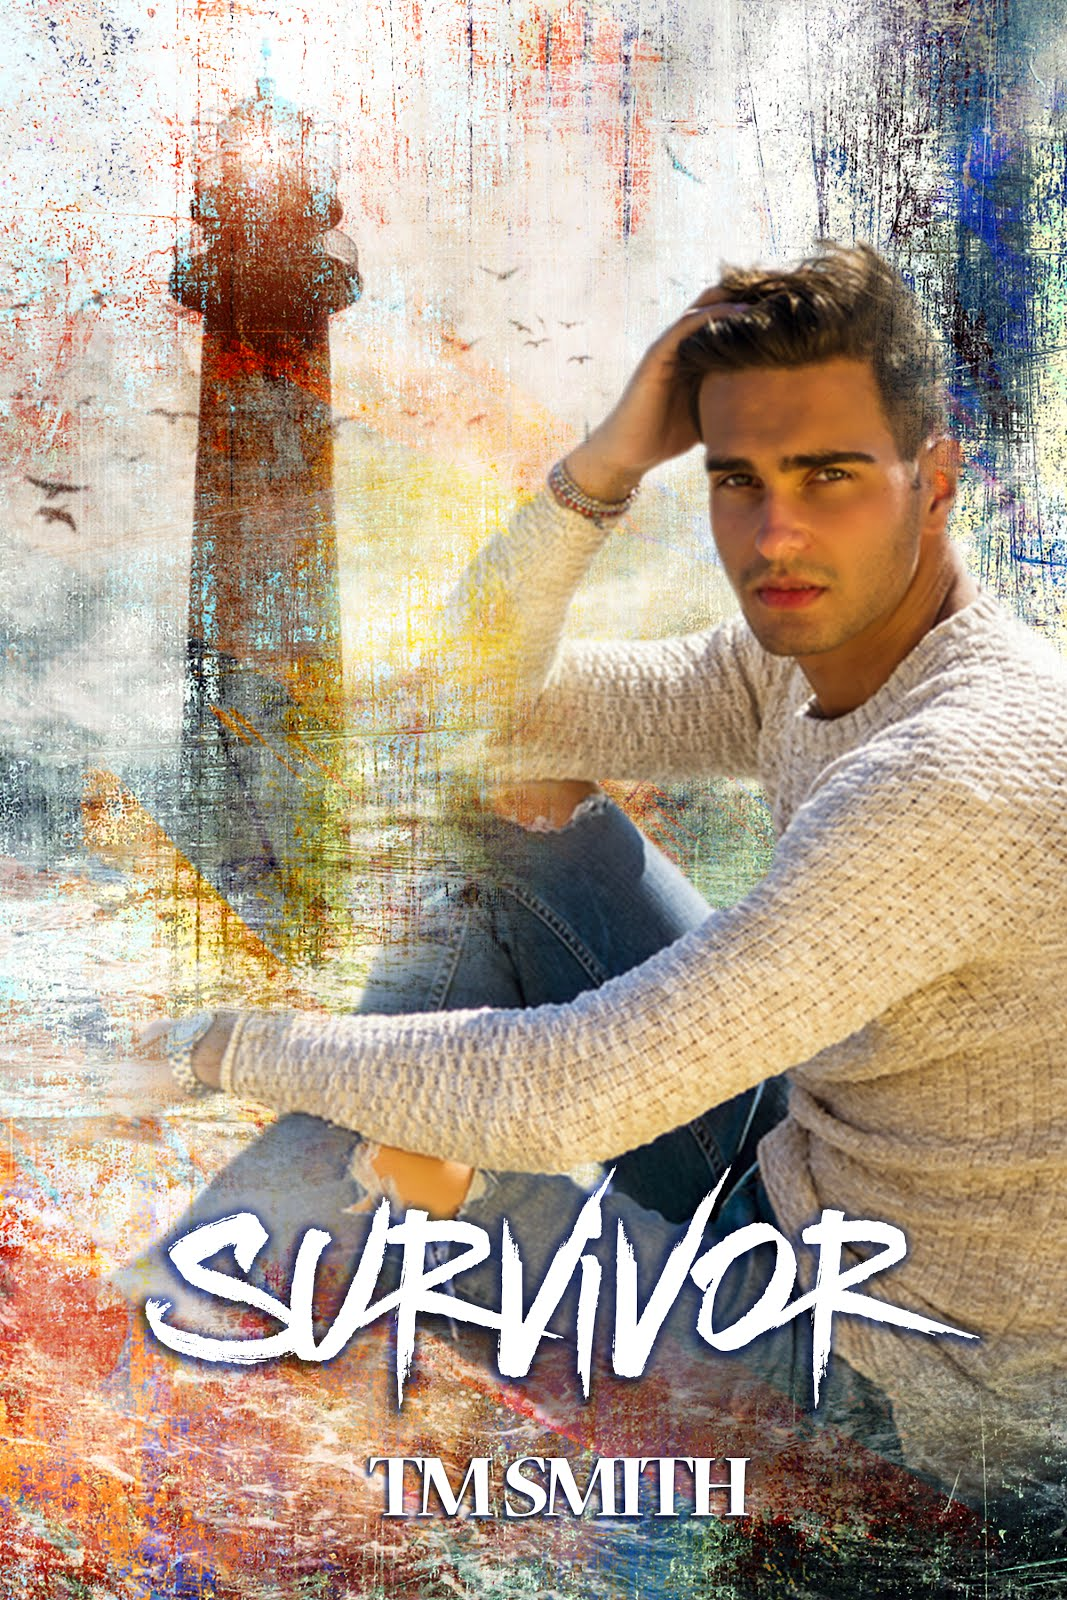 Survivor is out now!